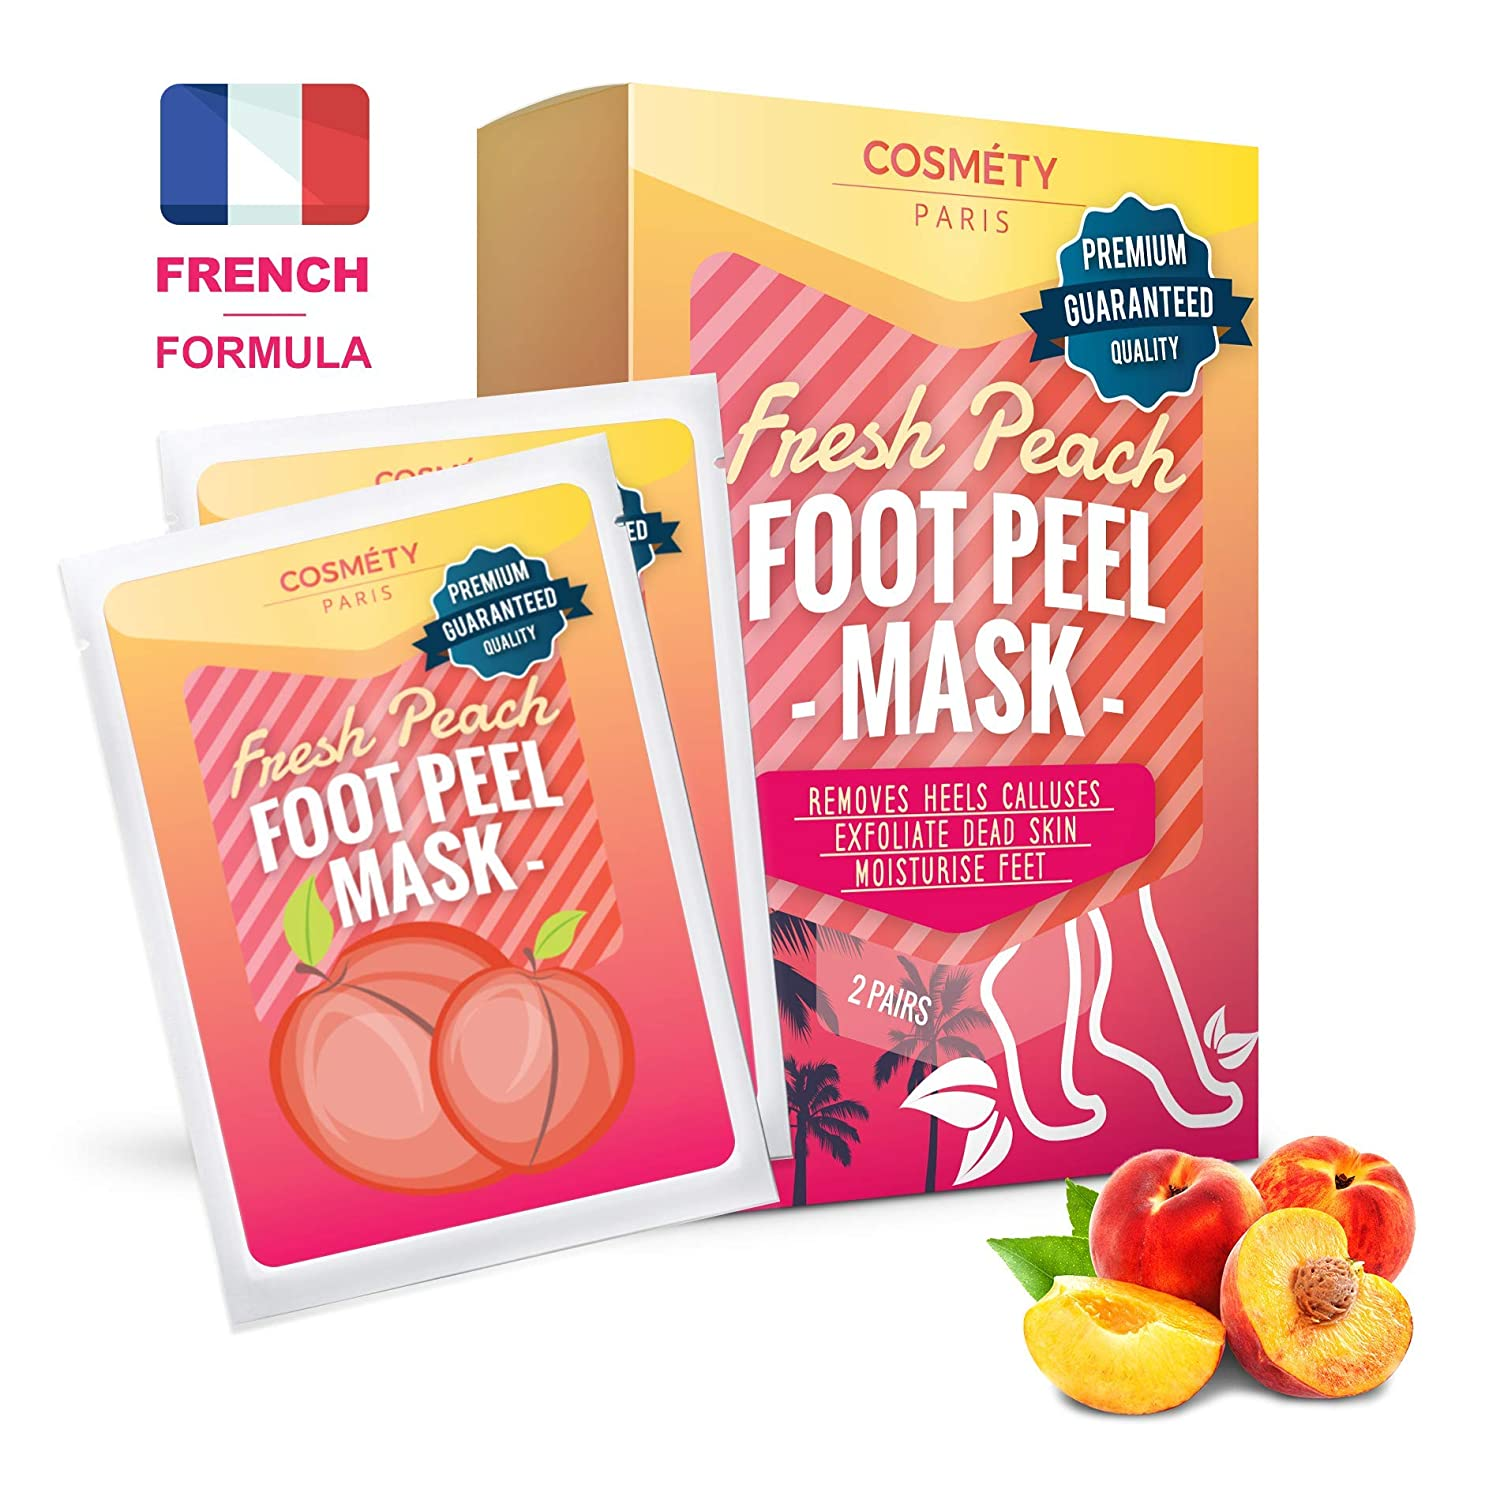 Exfoliating Foot Peeling Mask for Soft Baby Feet - 2 Pairs - Removes Calluses, Dead and Dry Skin - Repairs Rough Heels in 7 Days; For Men and Women; Natural Gel Socks Booties; Antioxidant Cosmety Paris